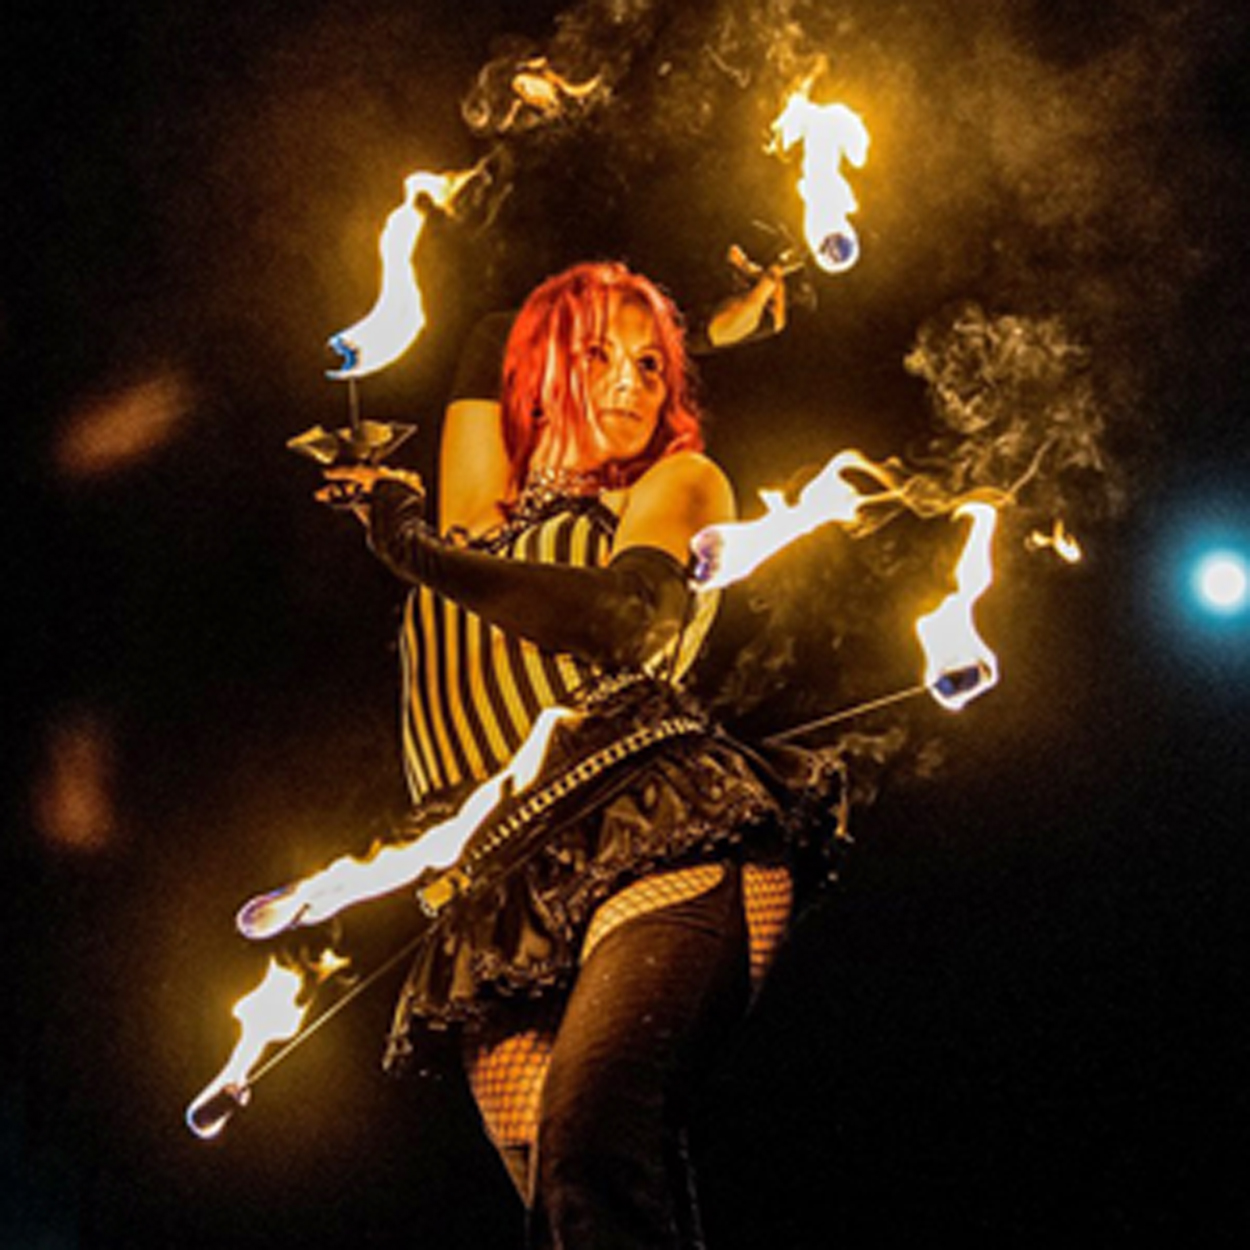 Circus Fire Hip Belt and Palm Torches Massachusetts Fire Dancer Fire Performer Fire Eater Fire Breather Connecticut Rhode Island